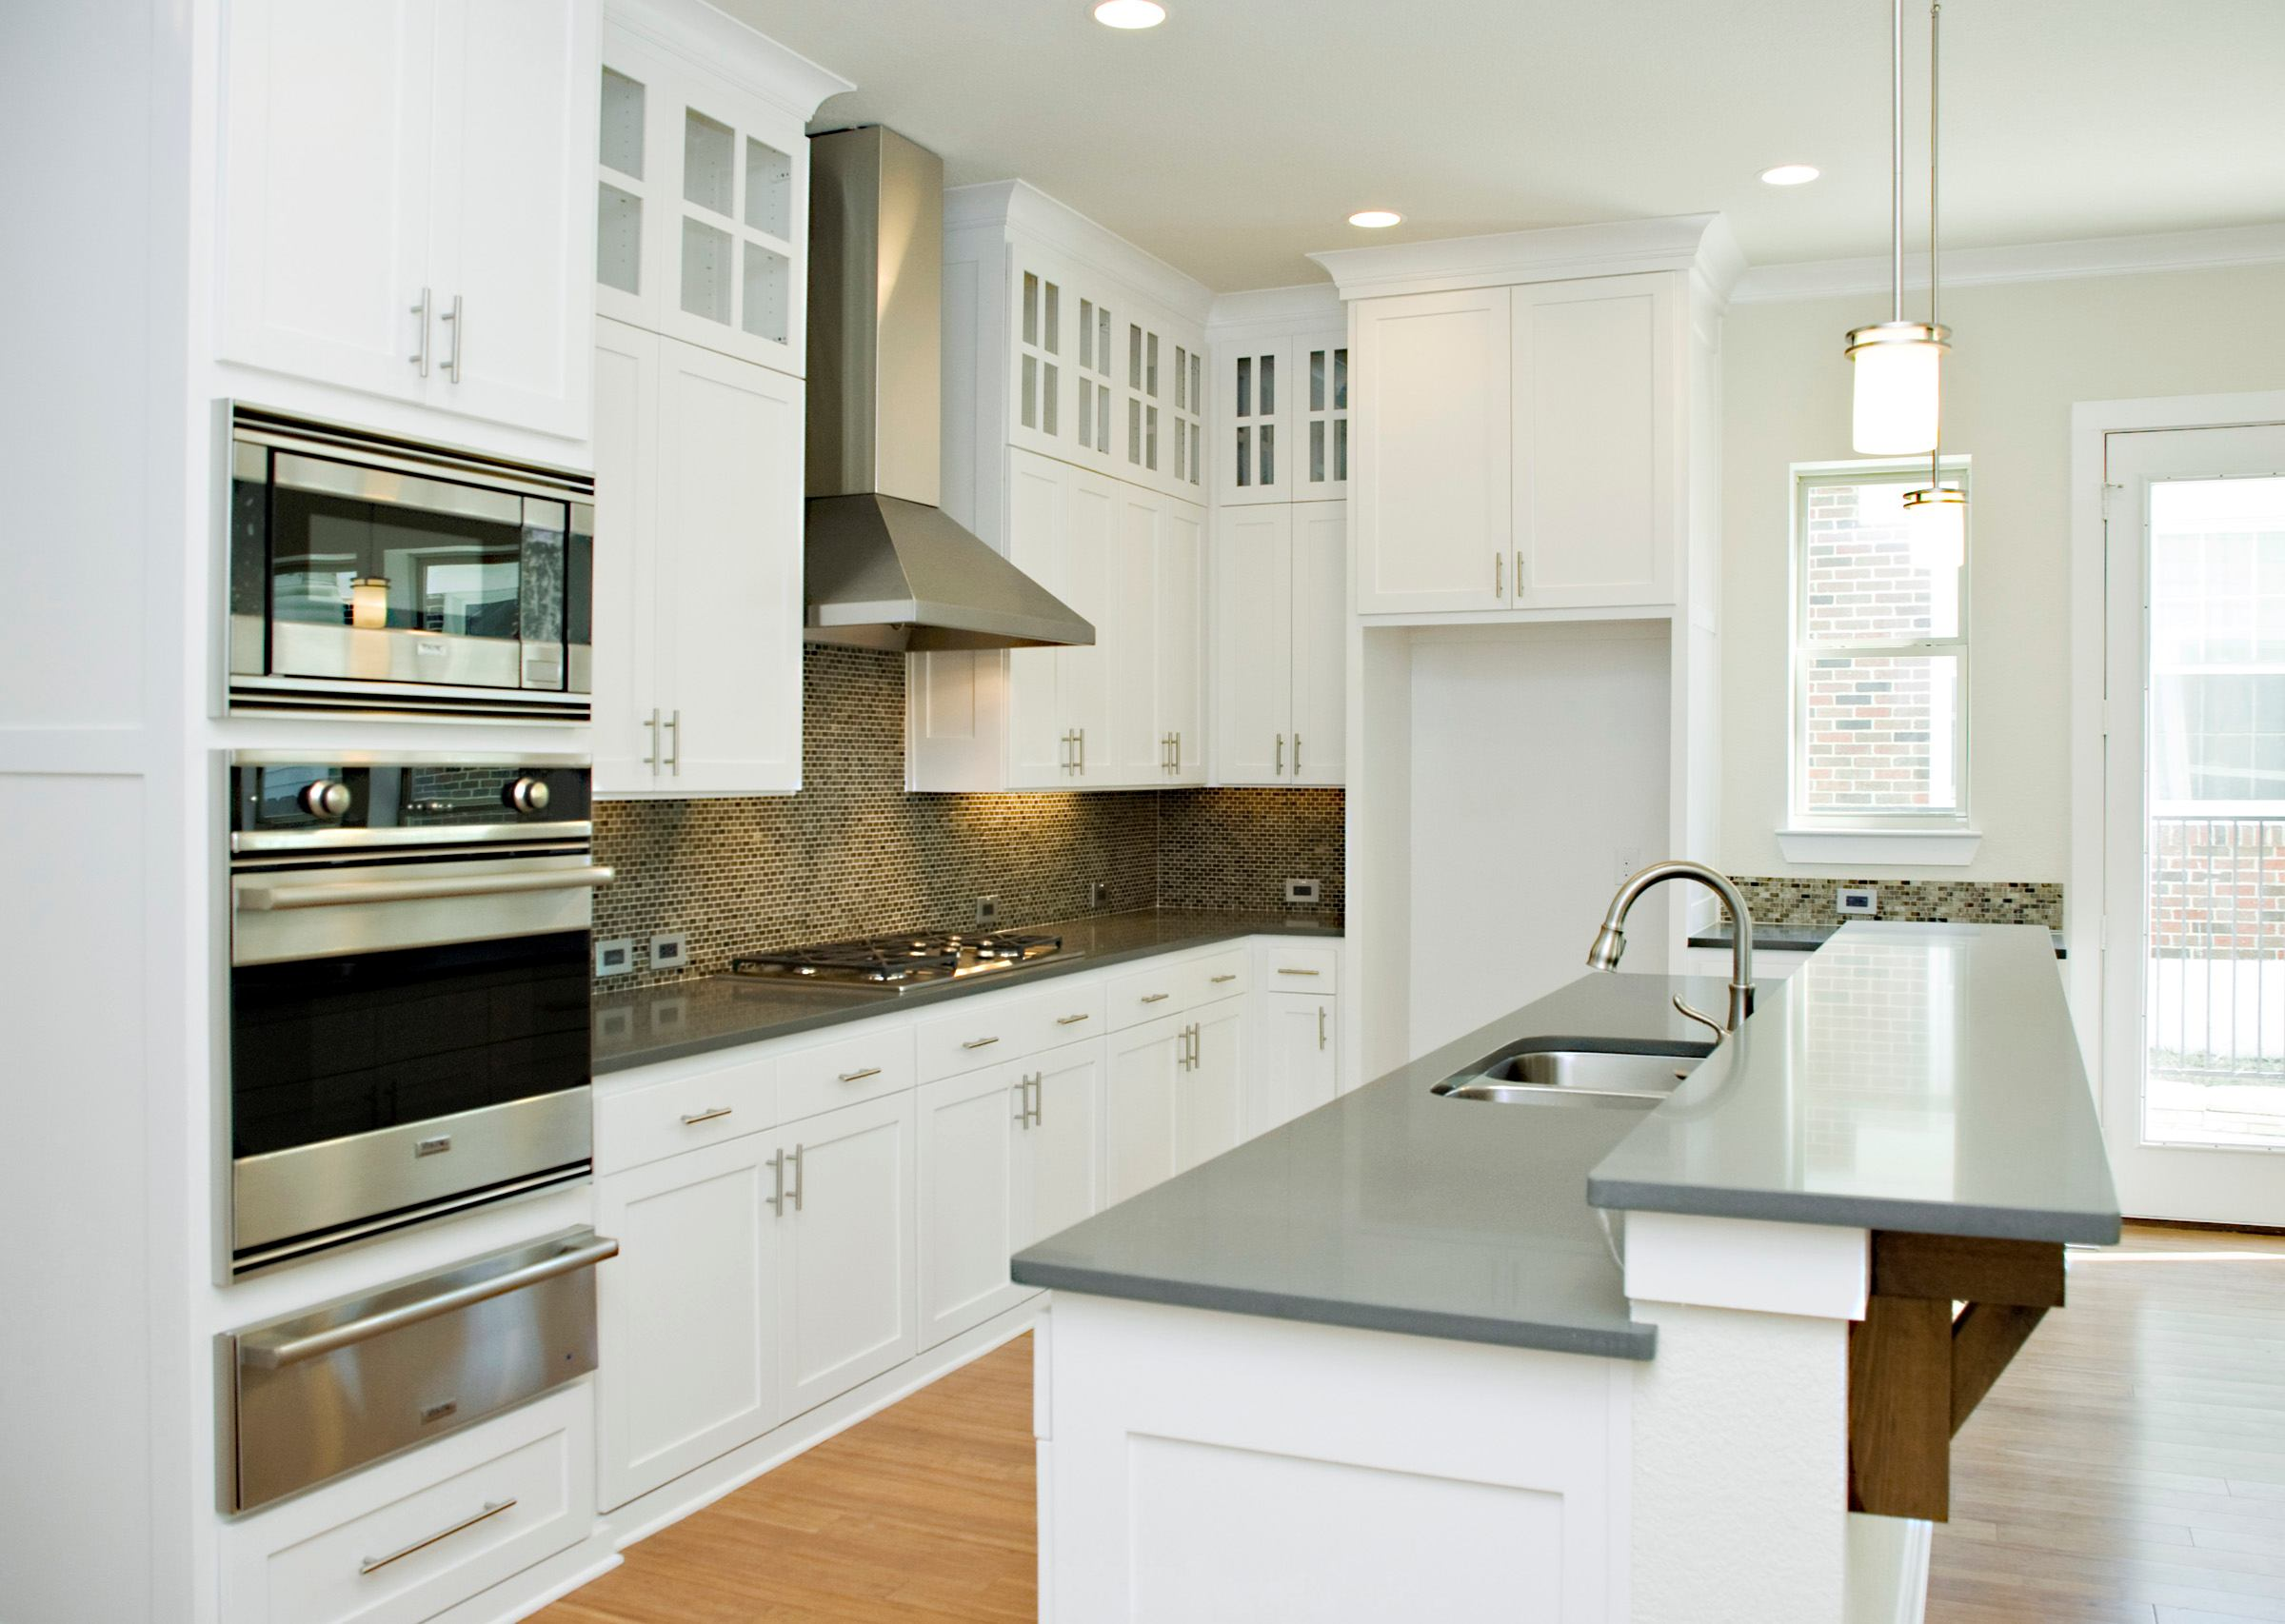 NKBA Survey Reveals What Design Choices Are Trending in Kitchen and Baths    Builder Magazine   Design  Kitchen  Bath  Housing Trends  IBS 2017. NKBA Survey Reveals What Design Choices Are Trending in Kitchen